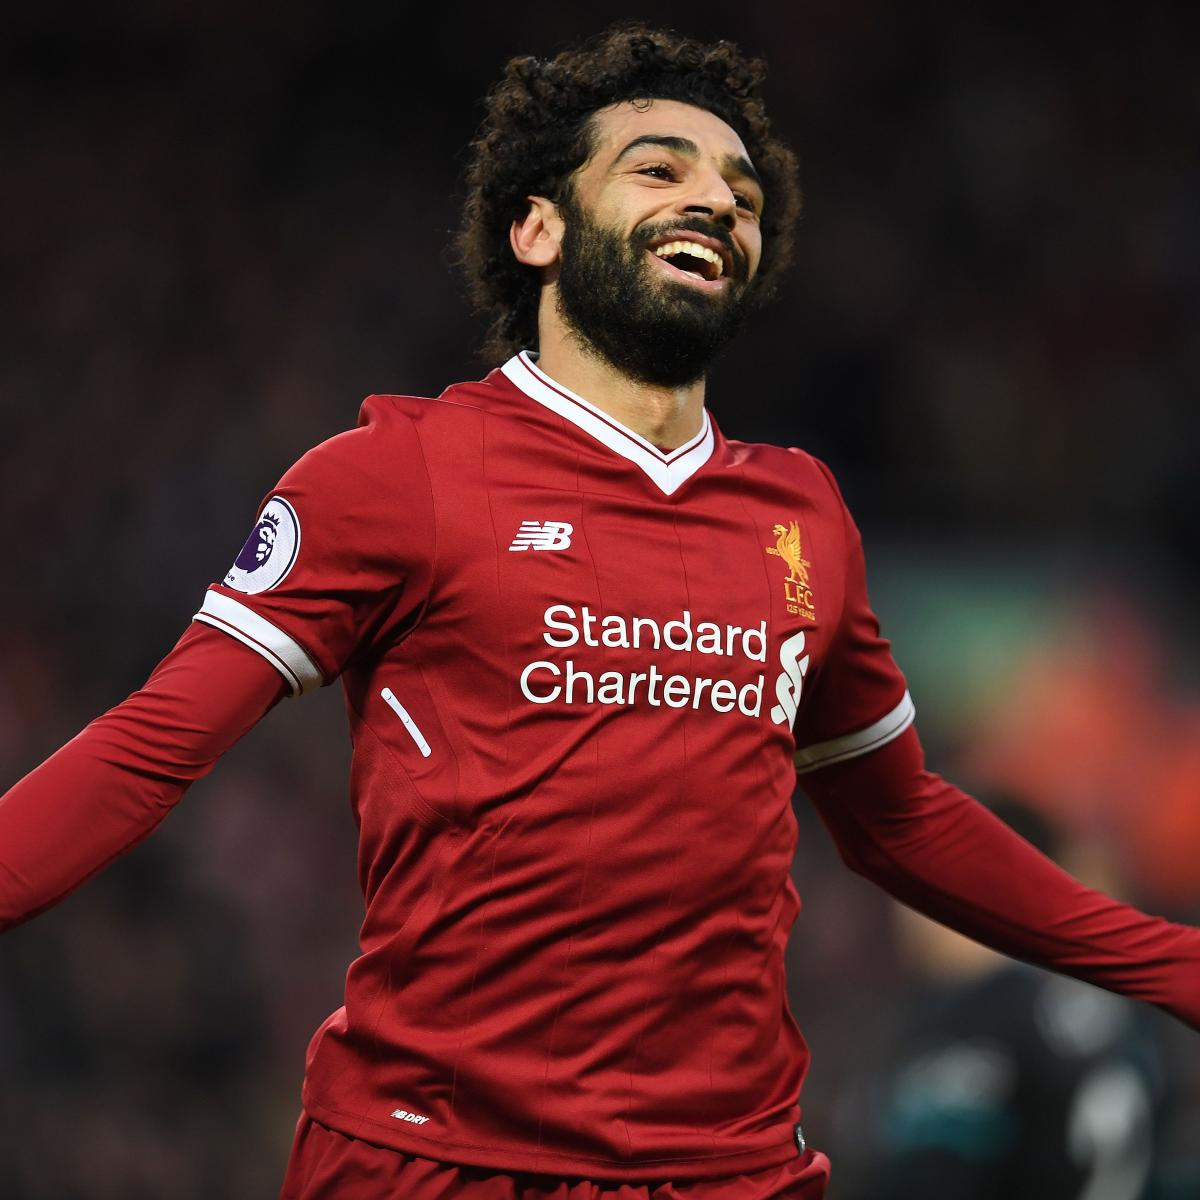 Liverpool Signings Of Summers Past: Signing Of The Summer Mo Salah Has Given Liverpool Genuine